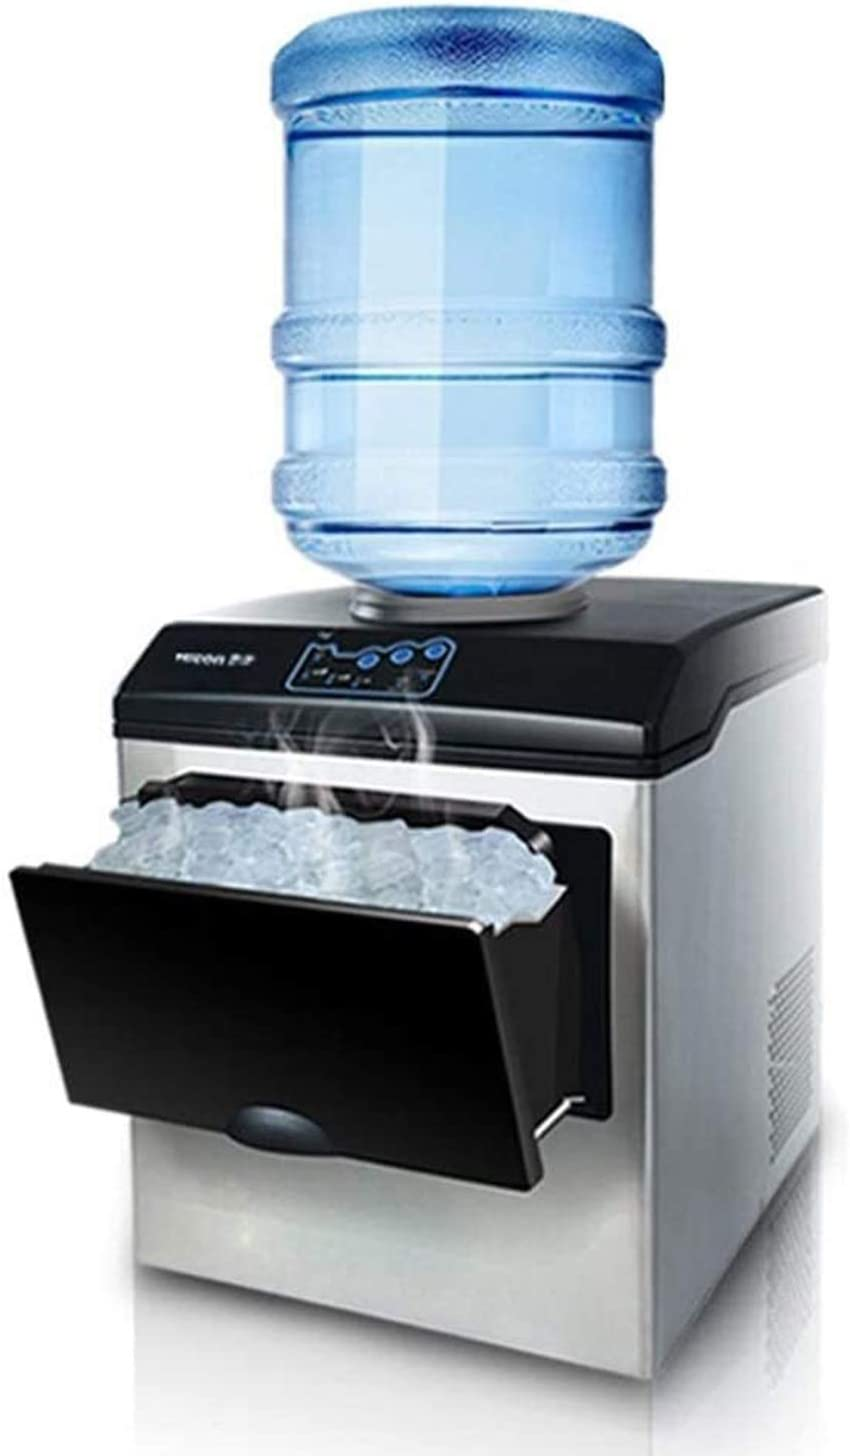 CZZ11 2in1 Water Dispenser Built-in Ice Cube Maker Machine Counter Top Up to 25kgs,Ice Maker with LED Display, 8-12 Min Ice Making, Stainless Steel (3 Types Ice)